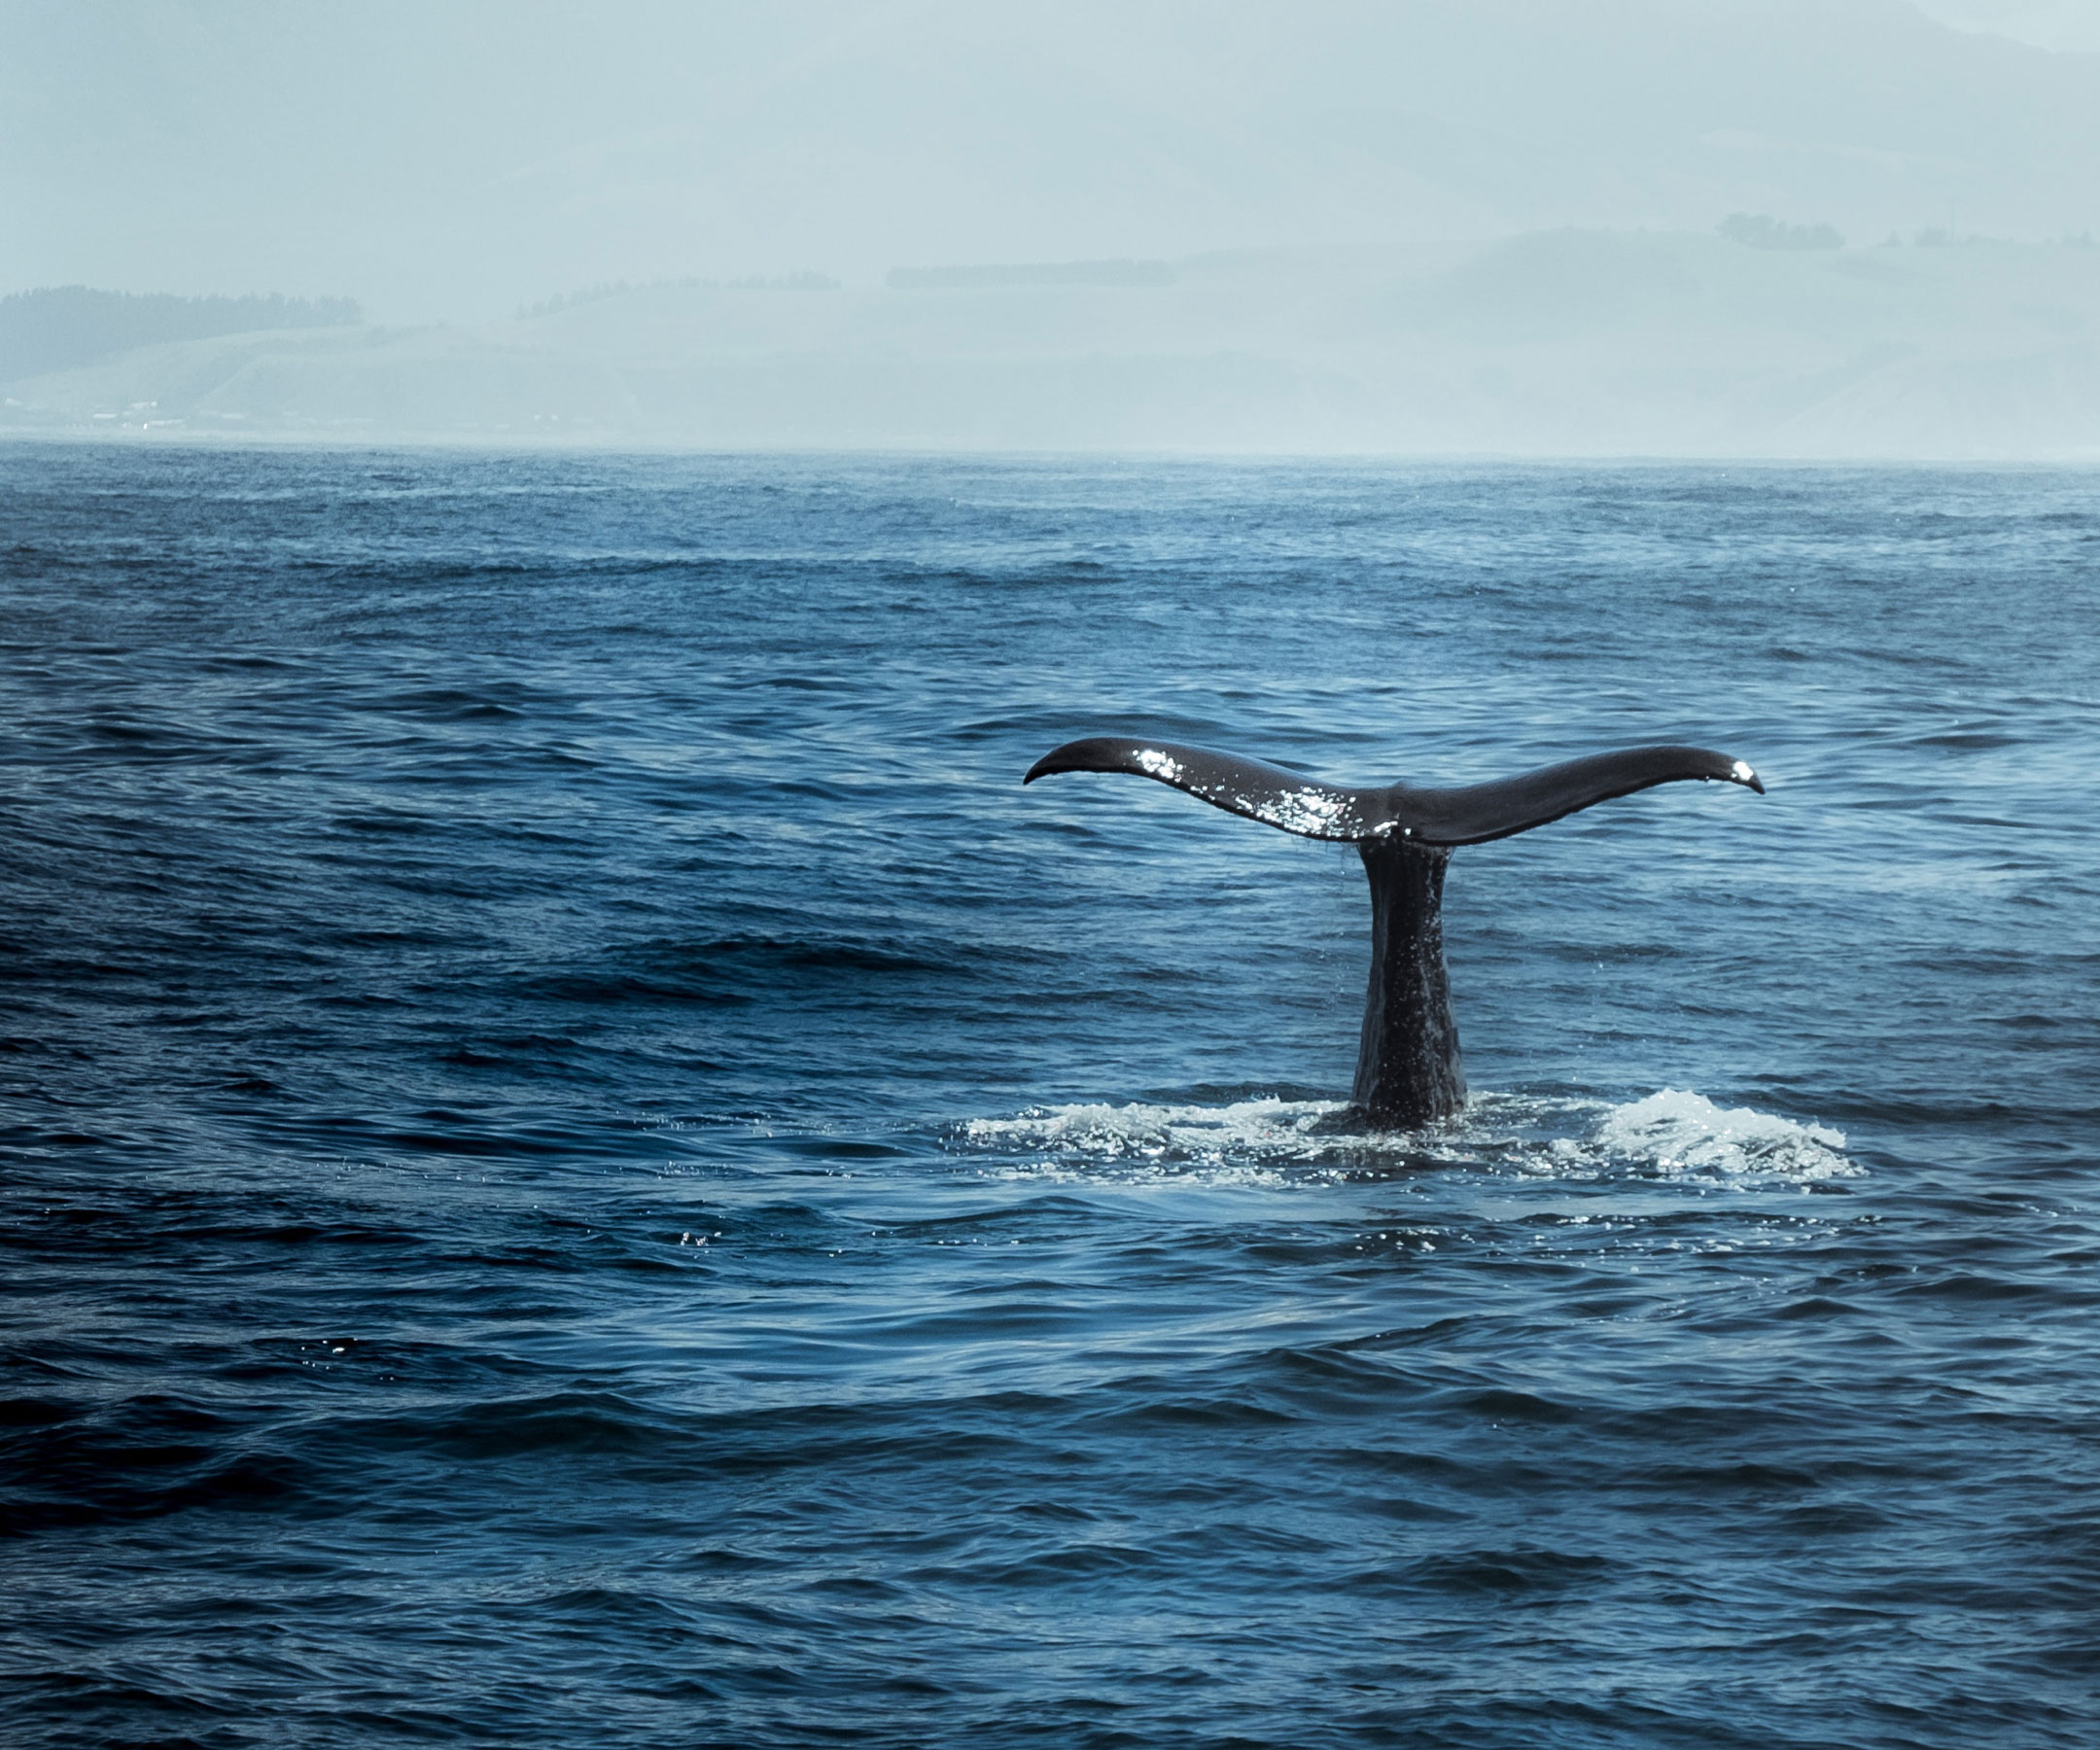 Whale City Tail